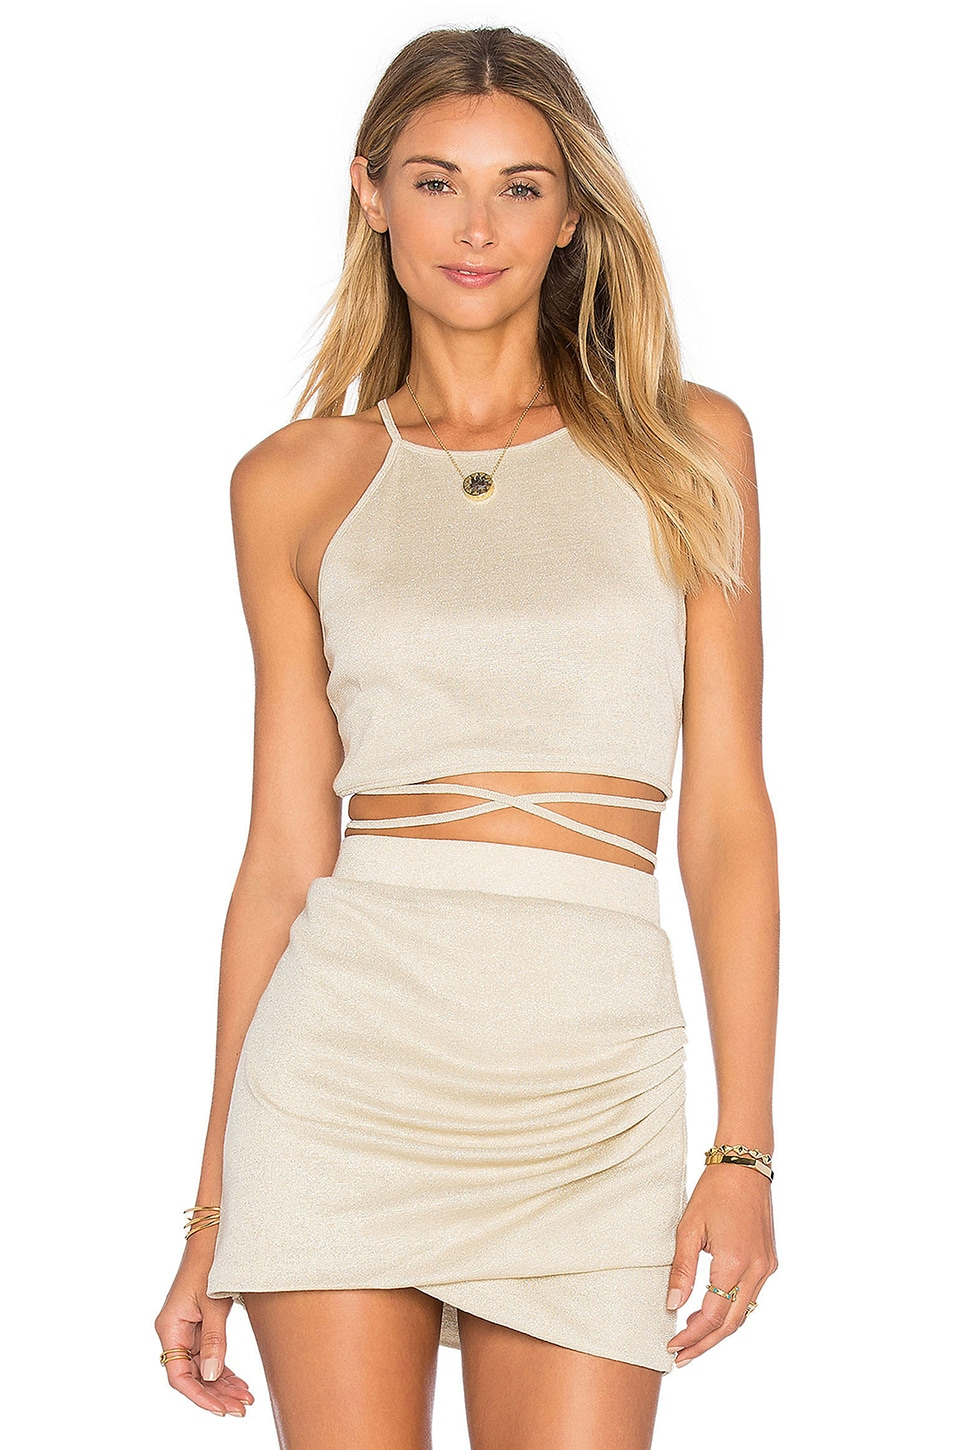 Lovers + Friends x REVOLVE x Alexis Ren Star Goddess Crop Top in Gold Jersey